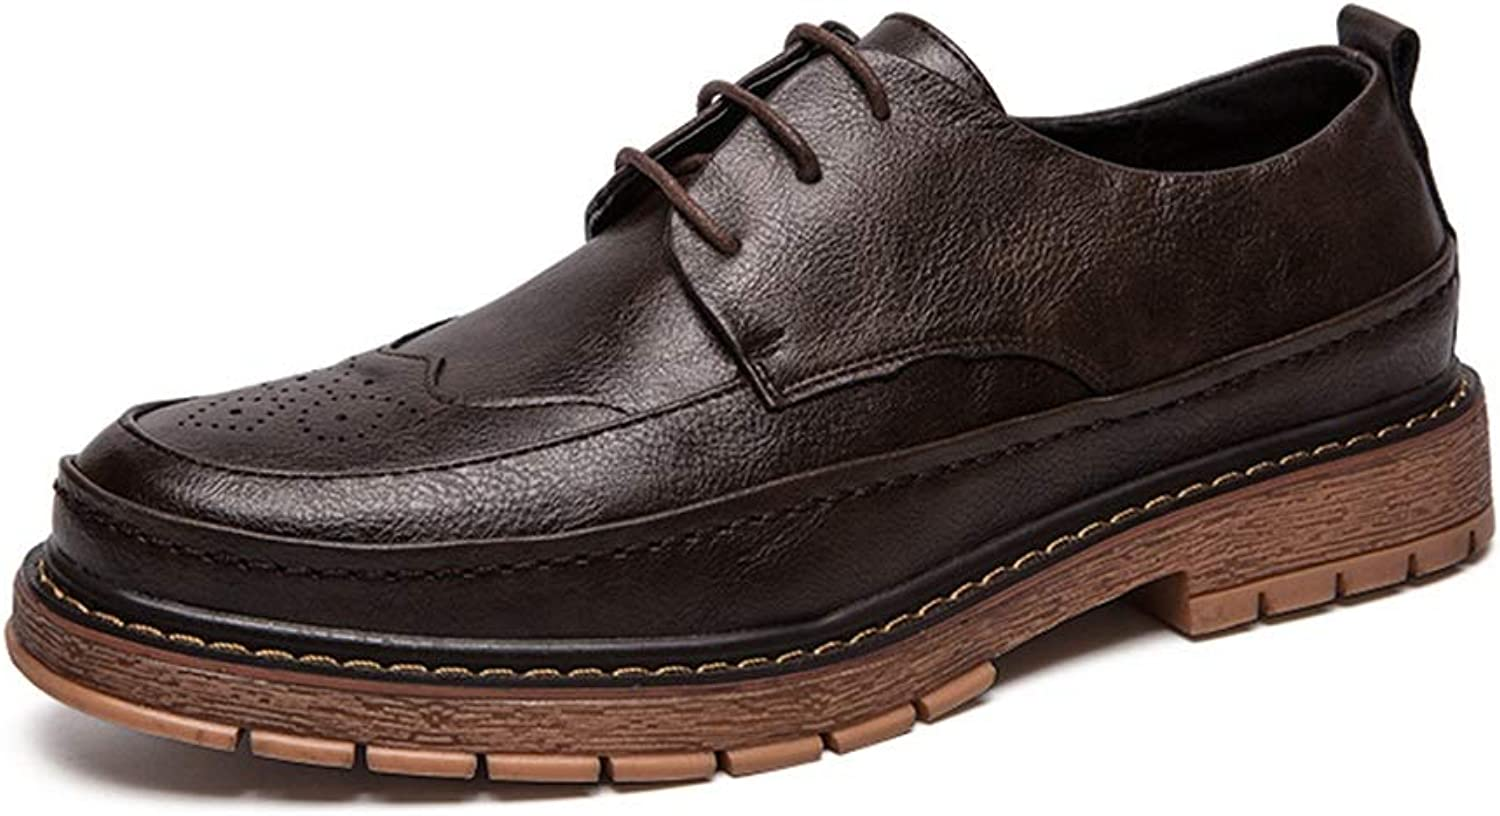 Easy Go Shopping Casual Oxford for Men Fashion Loafers Lace Up Comfortable Slip On Flats shoes PU Leather Upper Round Toe Abrasion Resistant Cricket shoes (color   Brown, Size   8 UK)